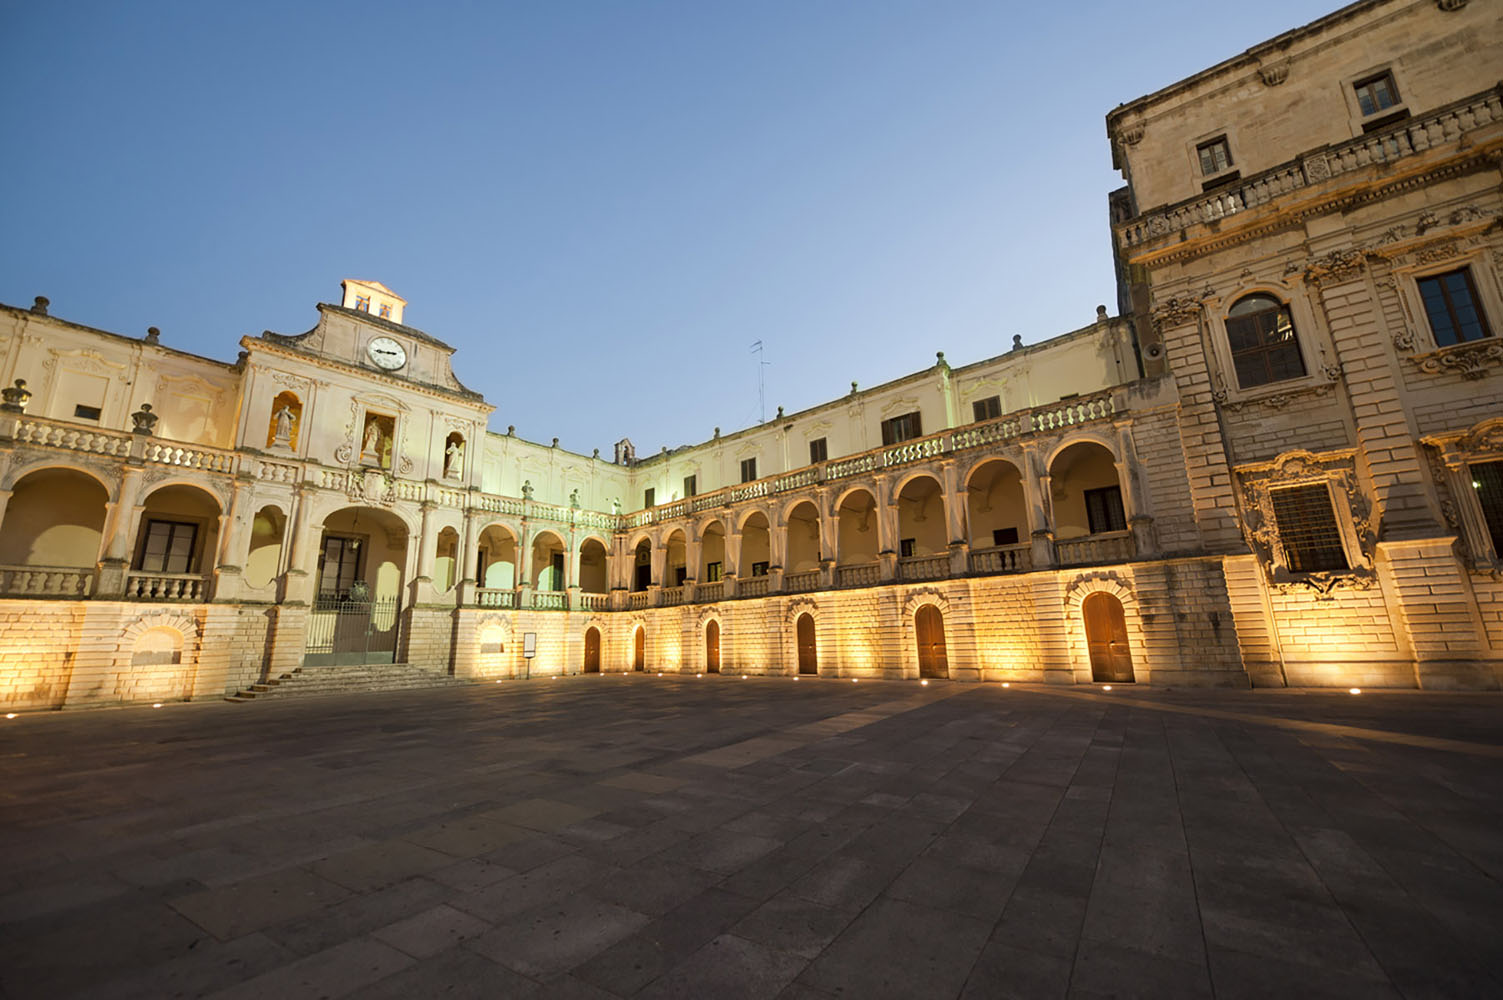 Pay a visit to the town of Lecce, a highlight of the Puglia region.